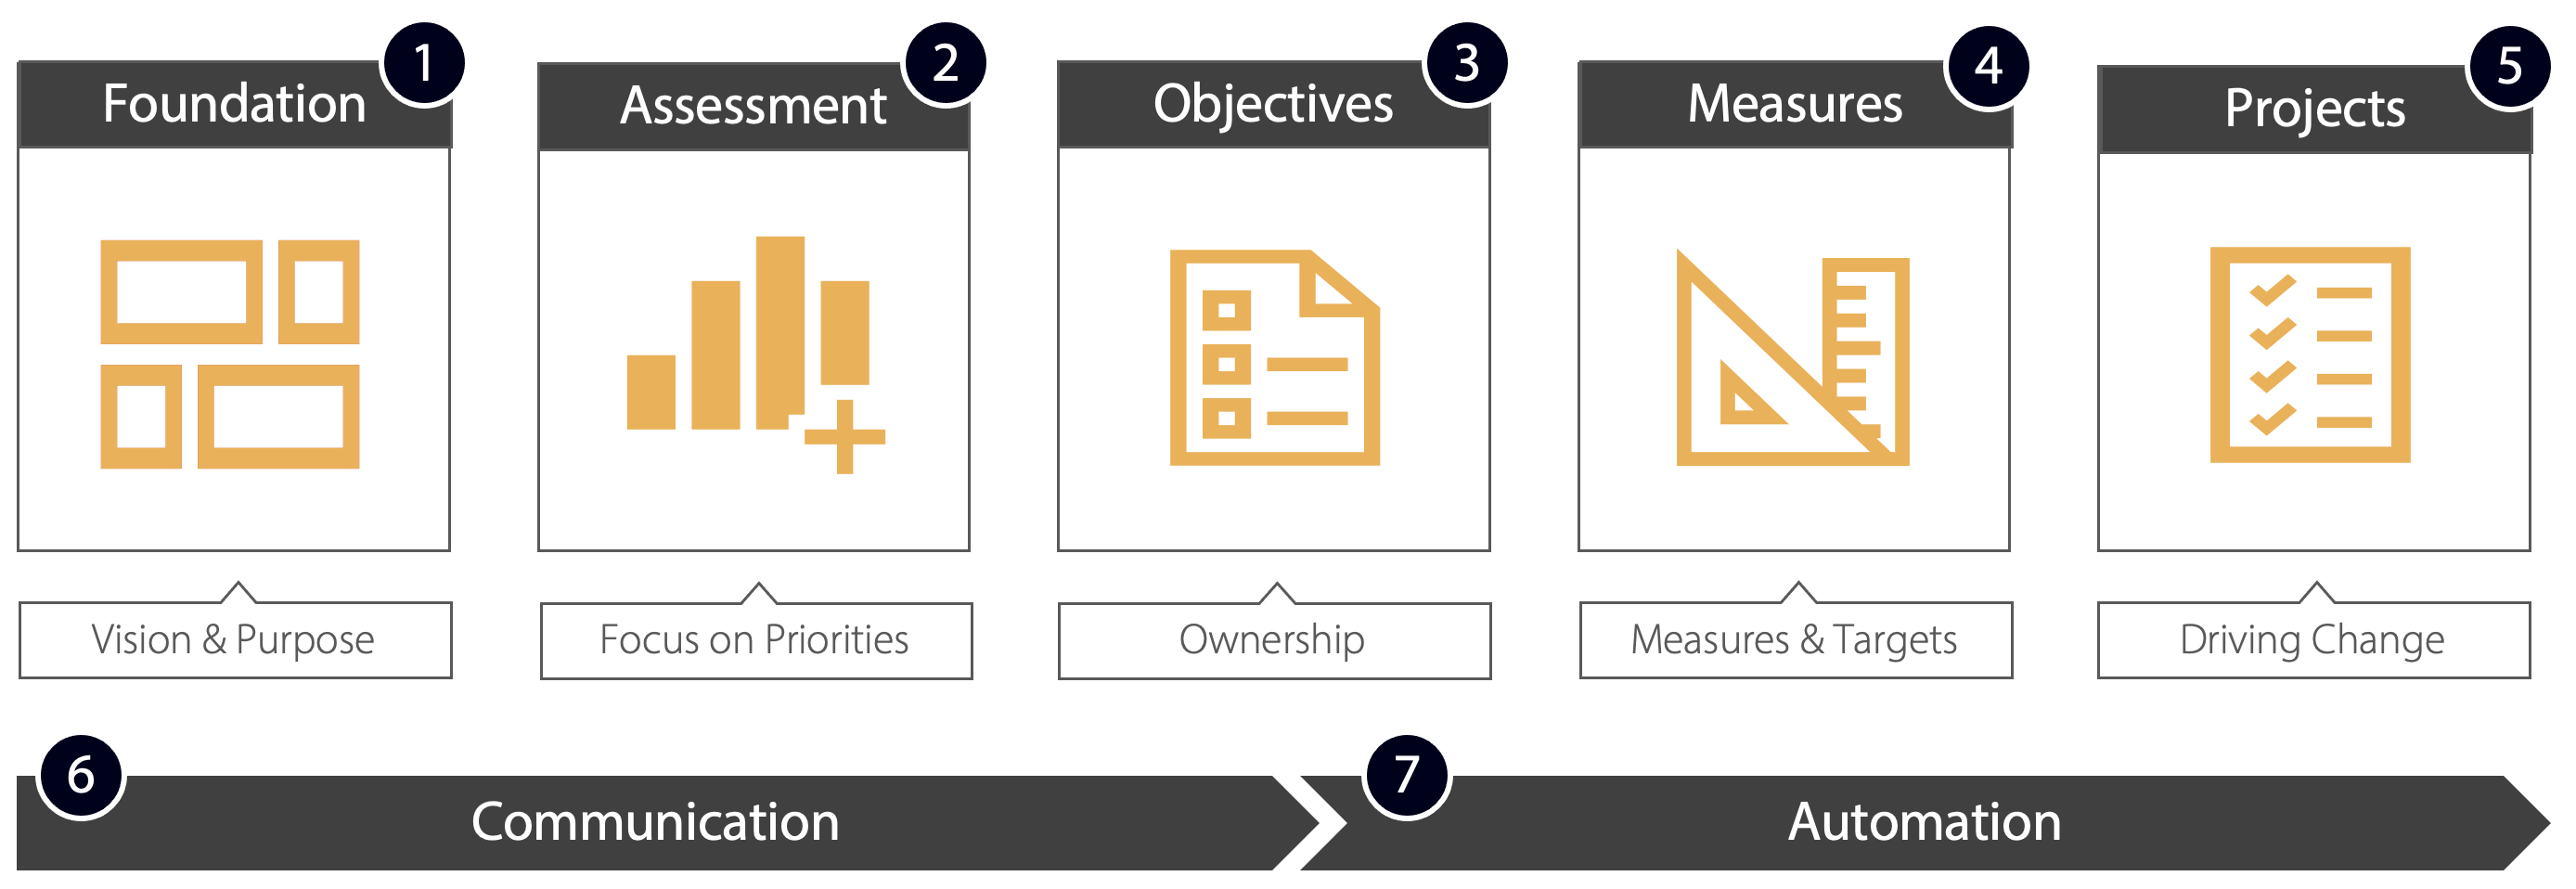 Intrafocus - Seven Step Strategic Process